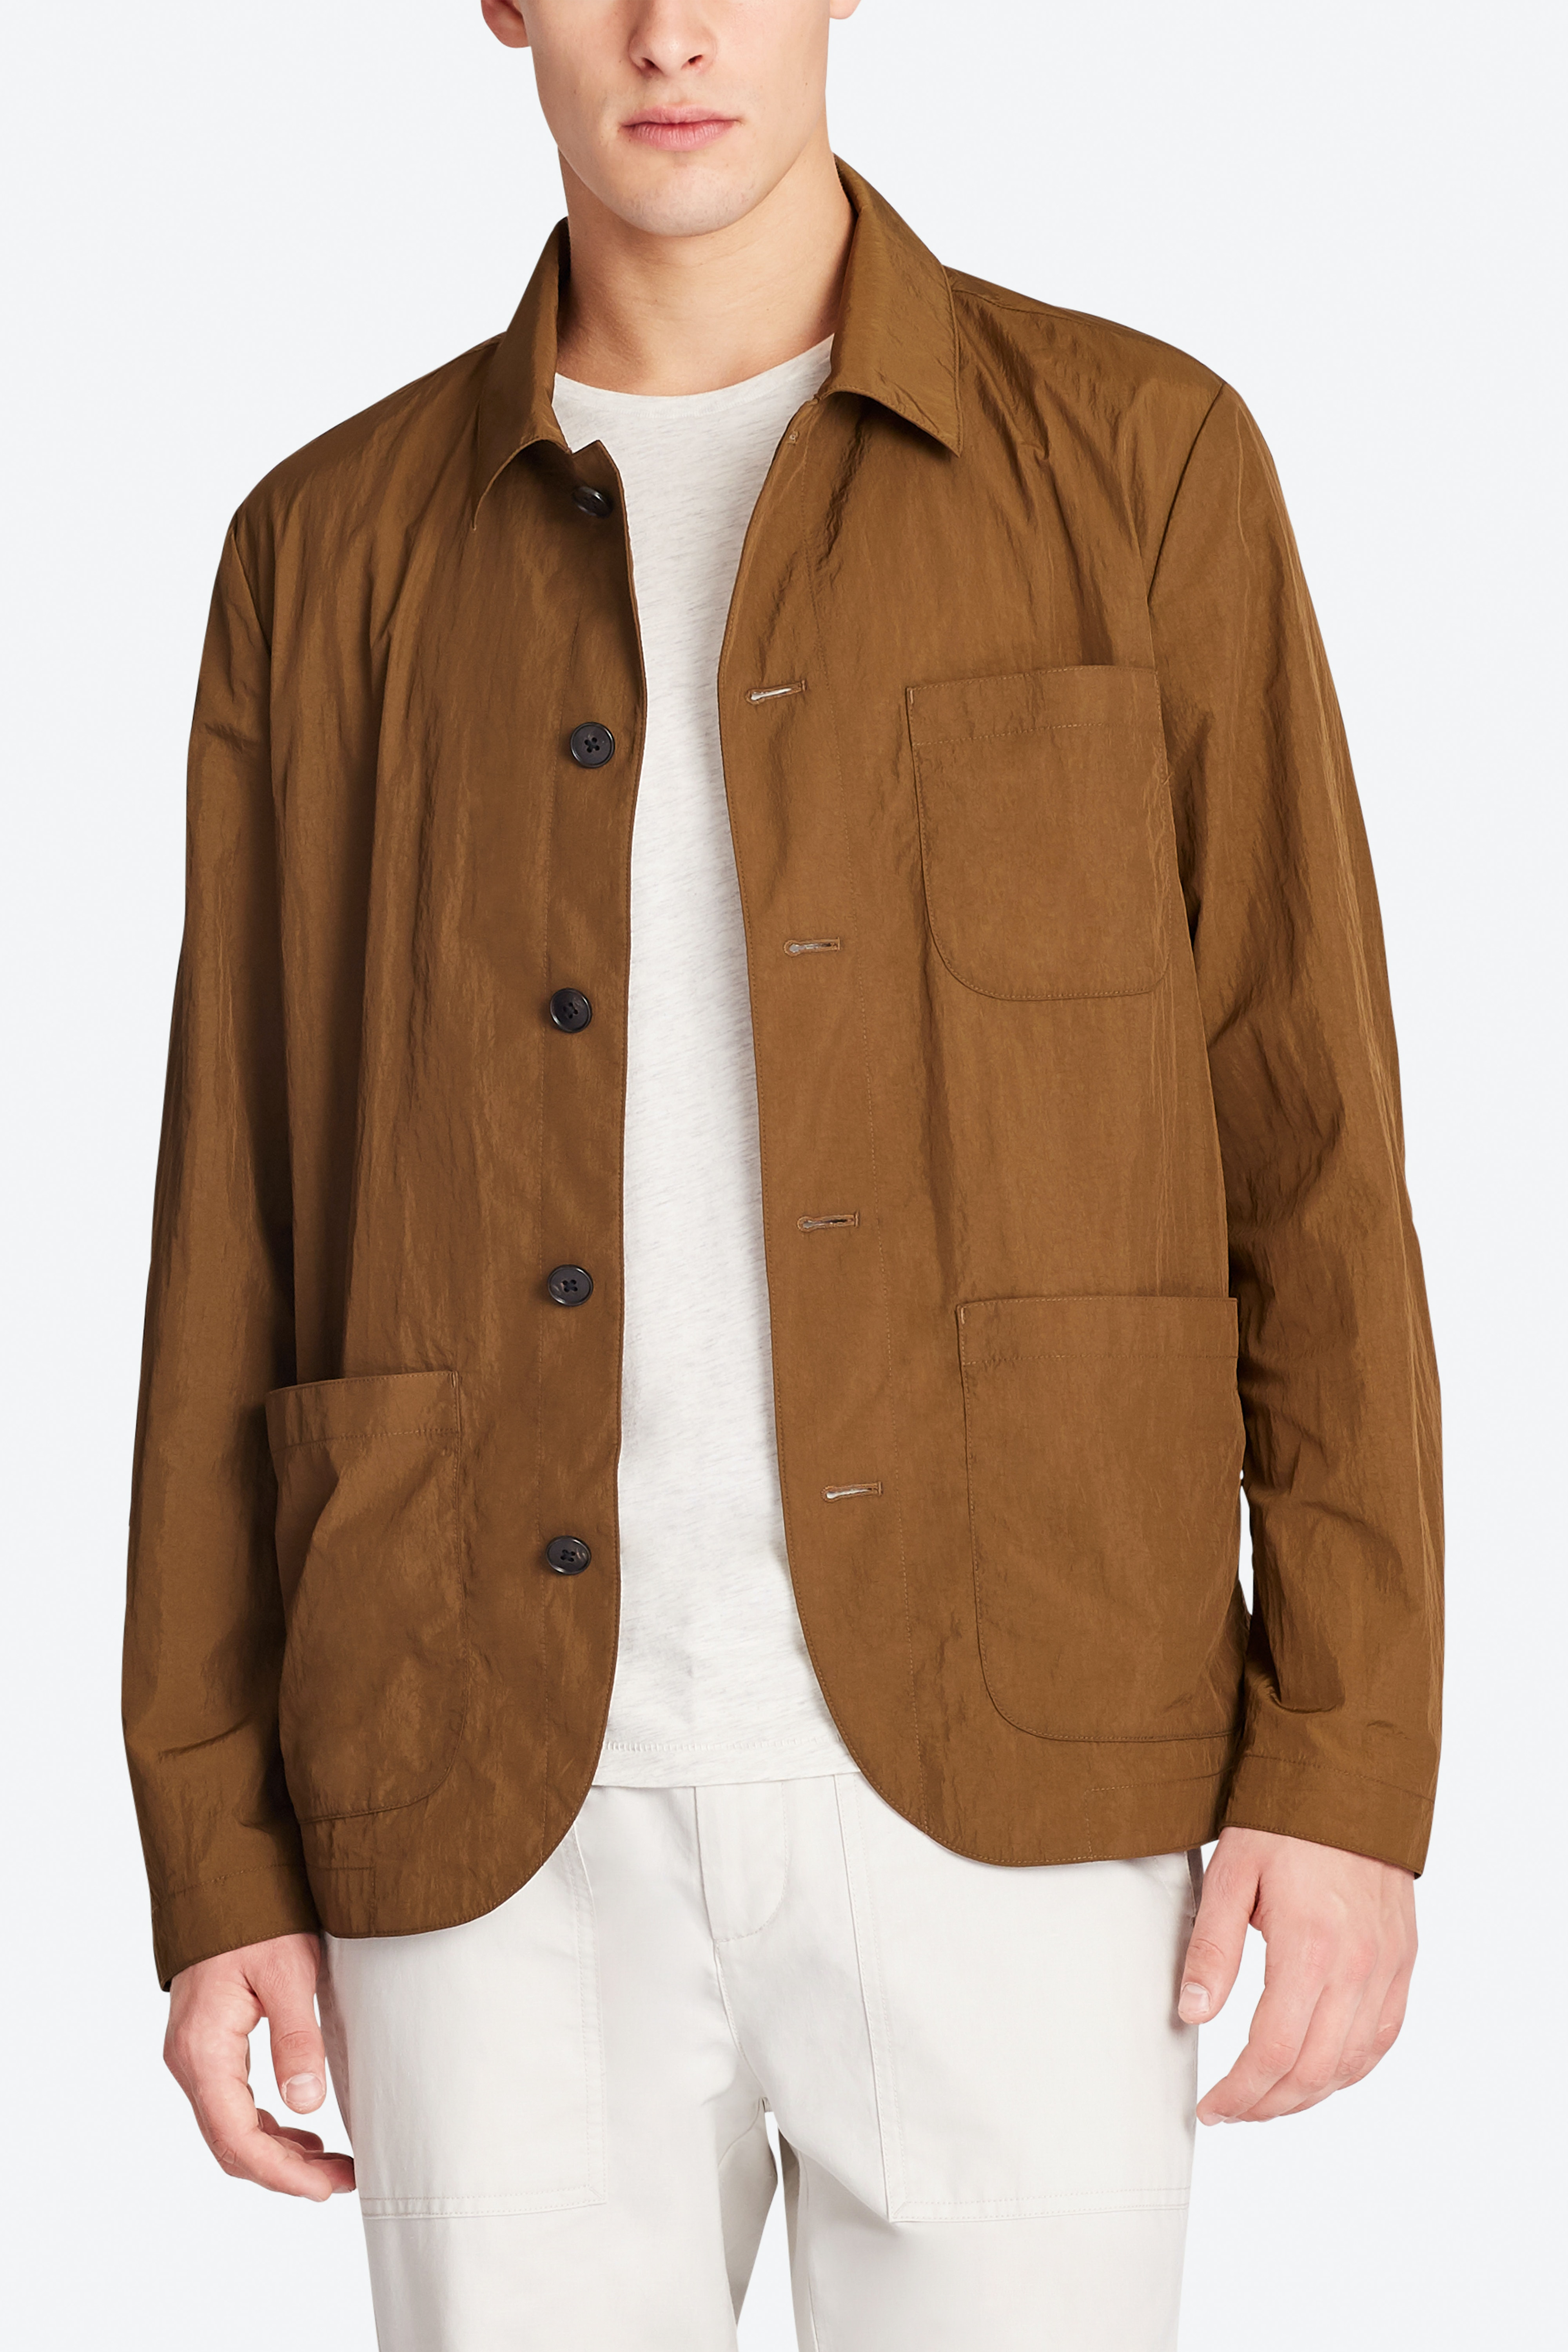 The Packable Chore Jacket